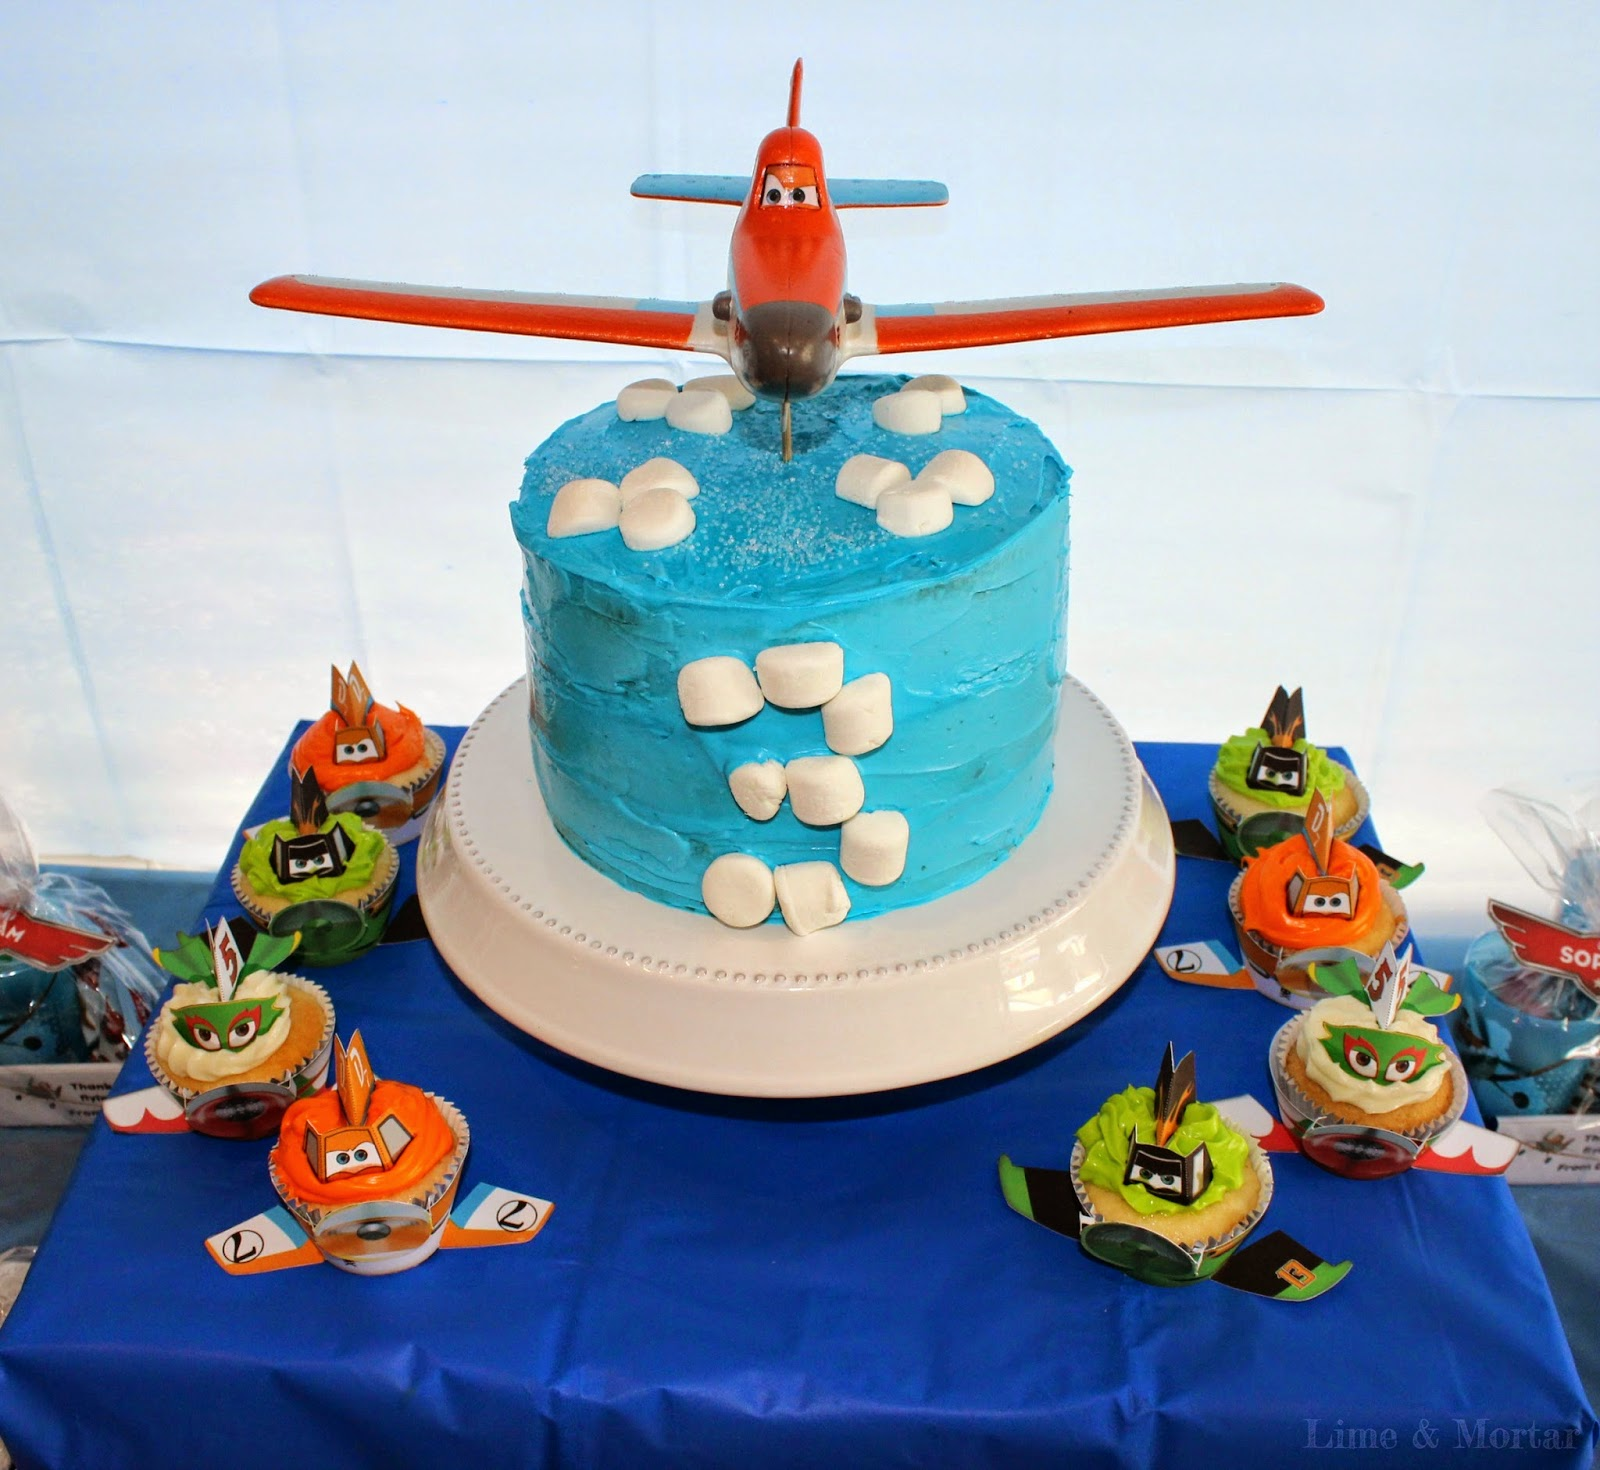 Lime mortar kids parties planes party for Airplane cake decoration